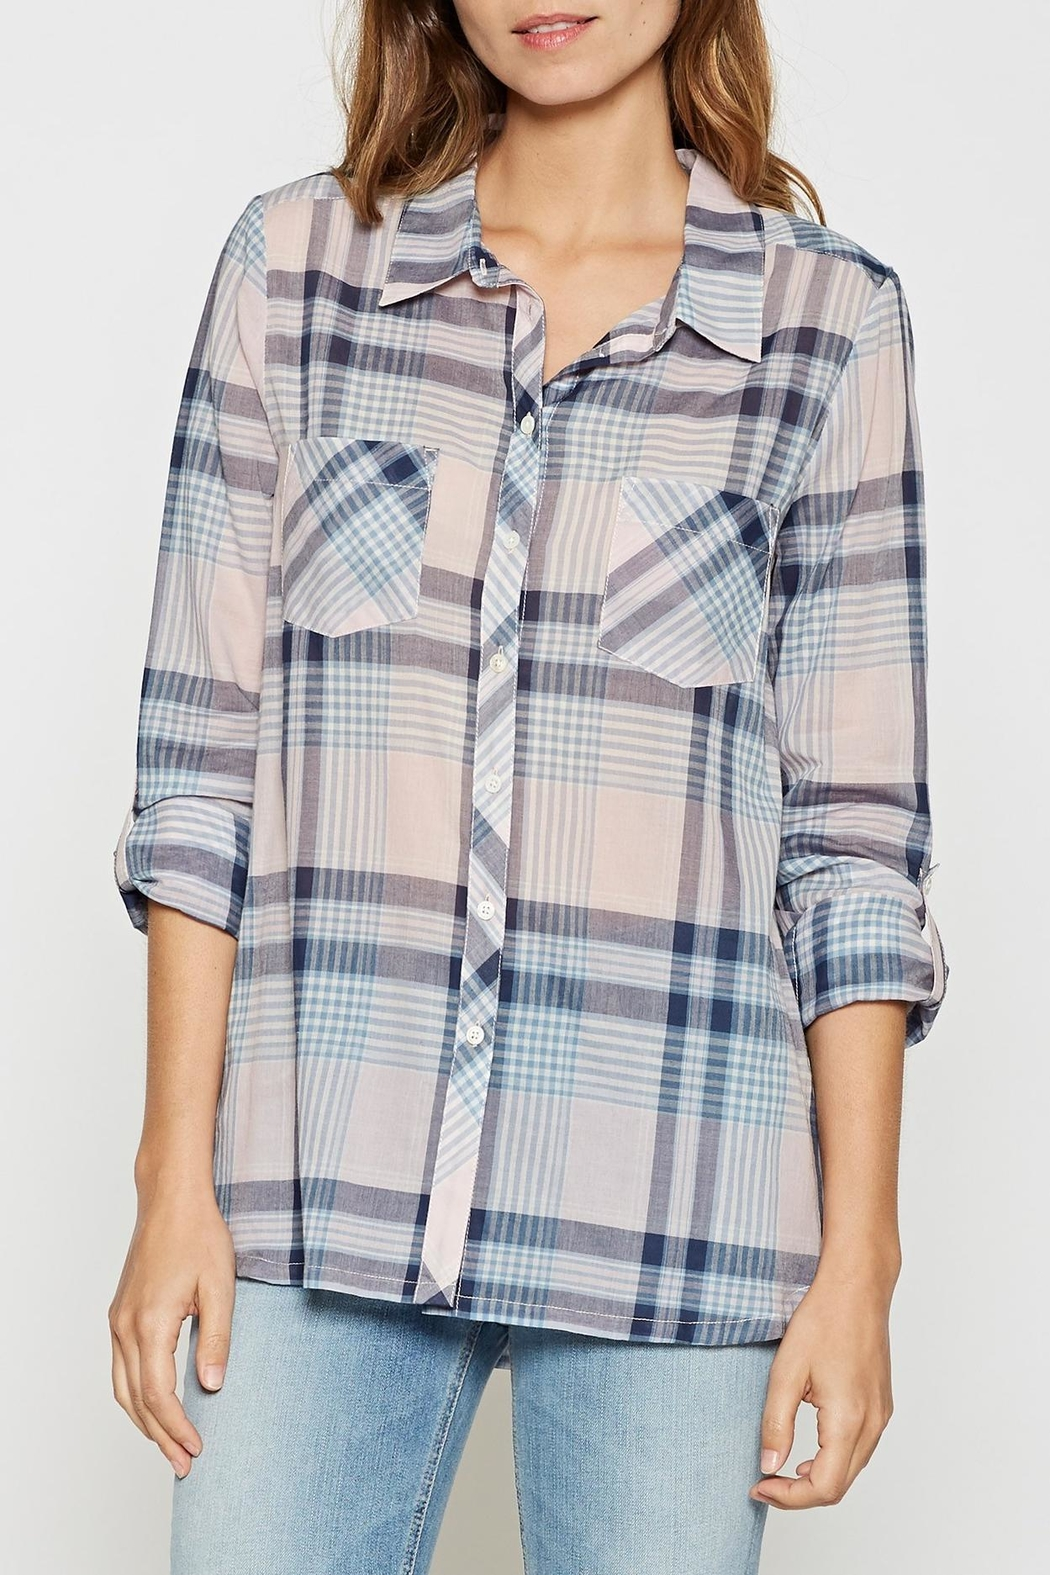 Joie Soft Lilya Plaid Top - Main Image